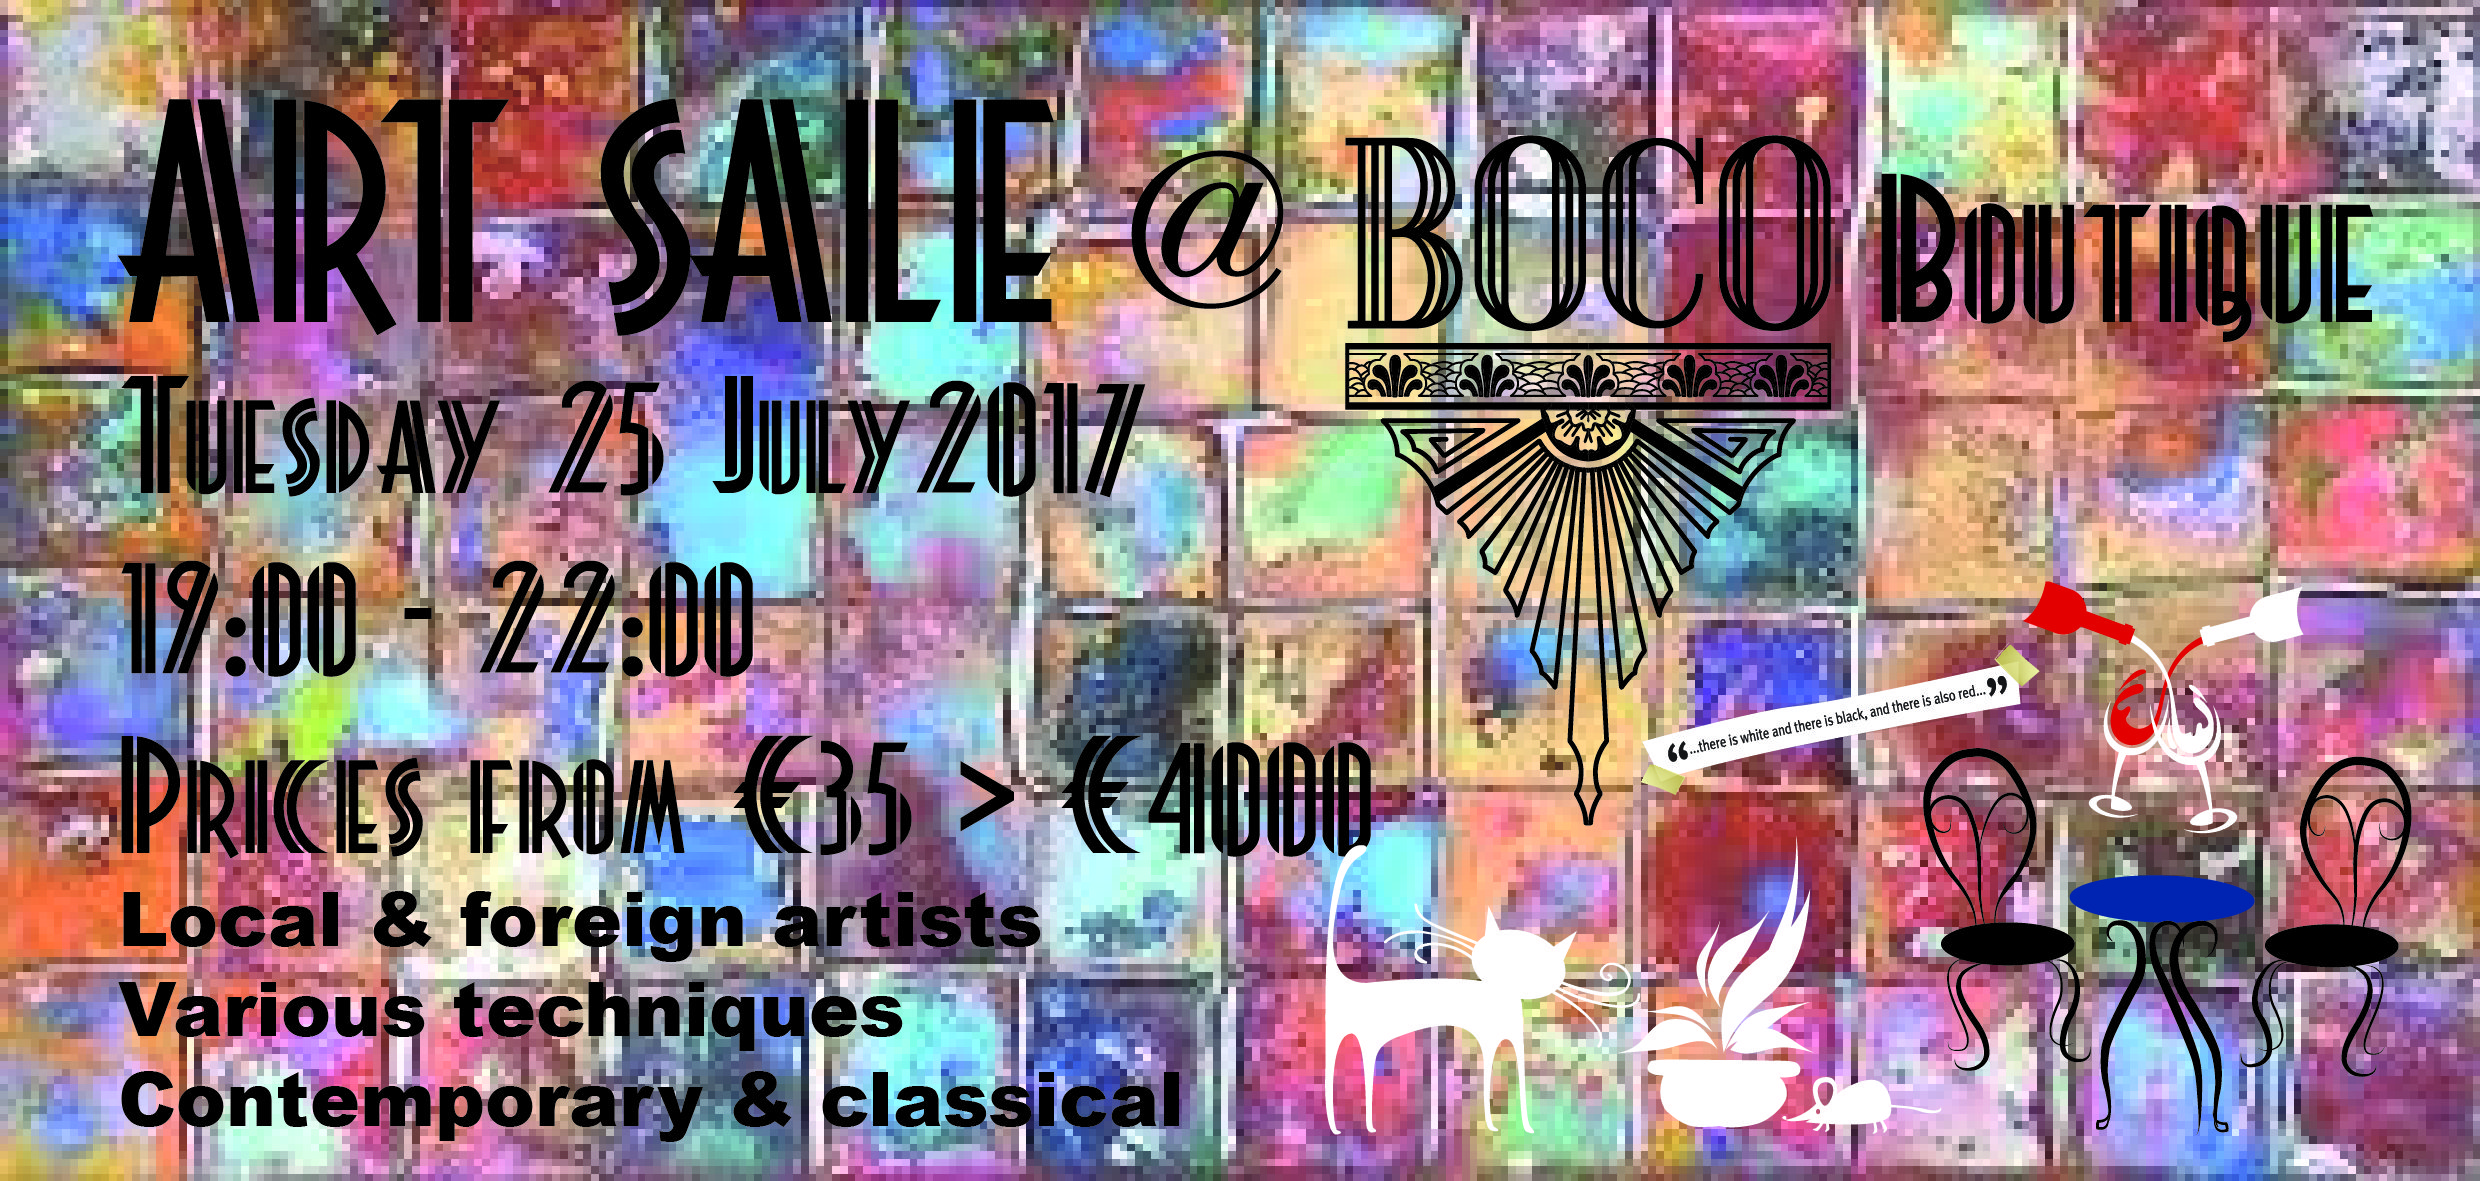 Art Sale @ BOCO Boutique